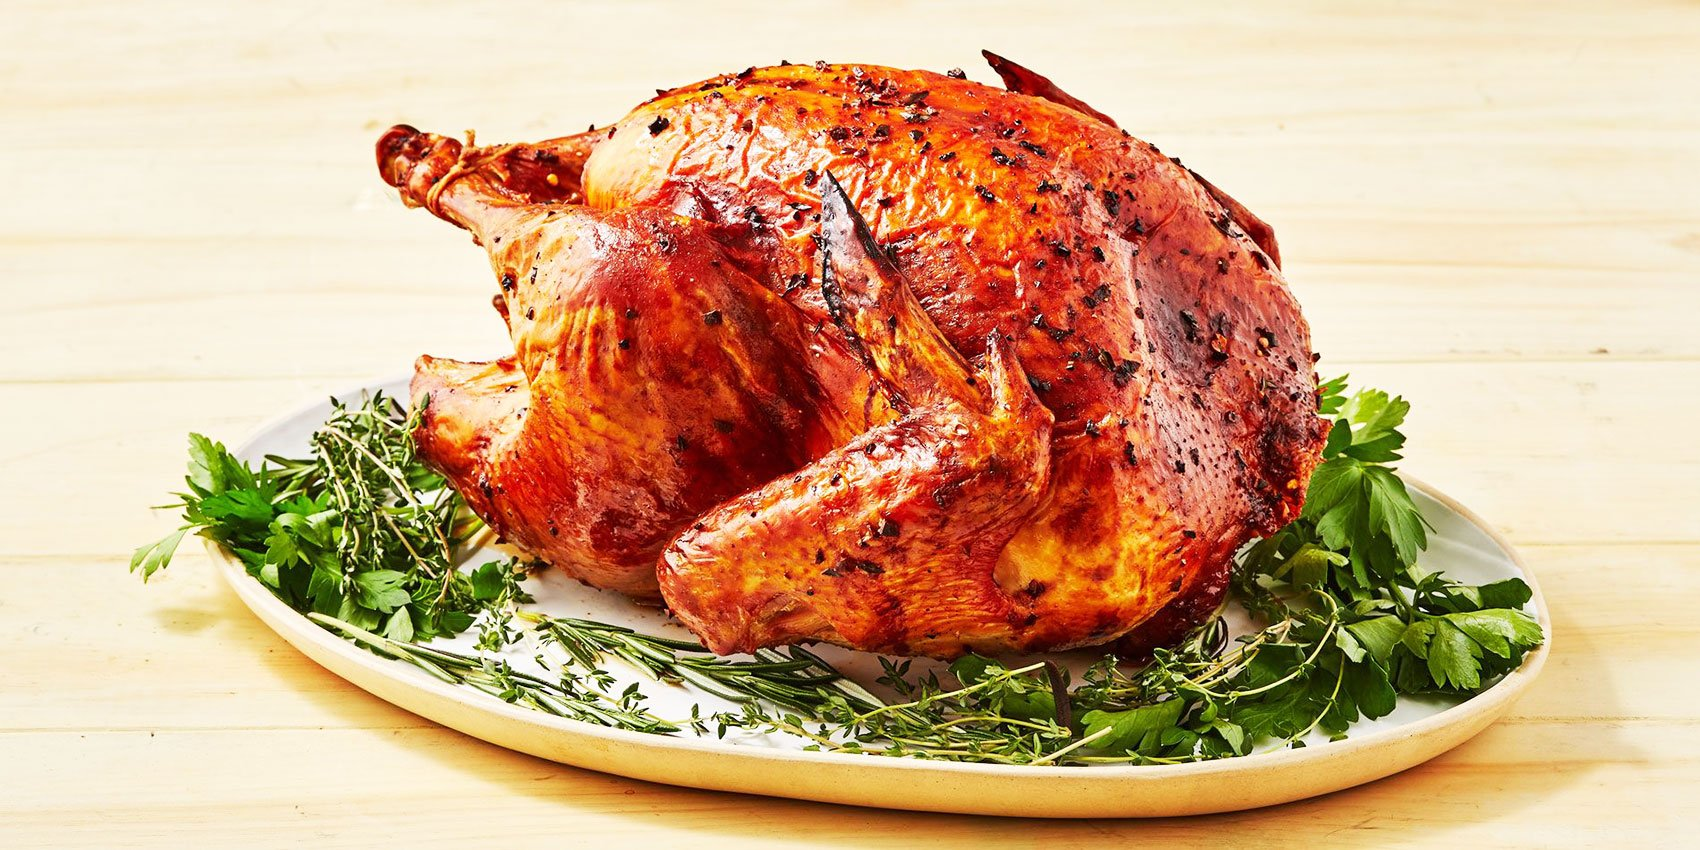 Juicy-Fried-Turkey---Traditional-Thanksgiving-Side-Dishes